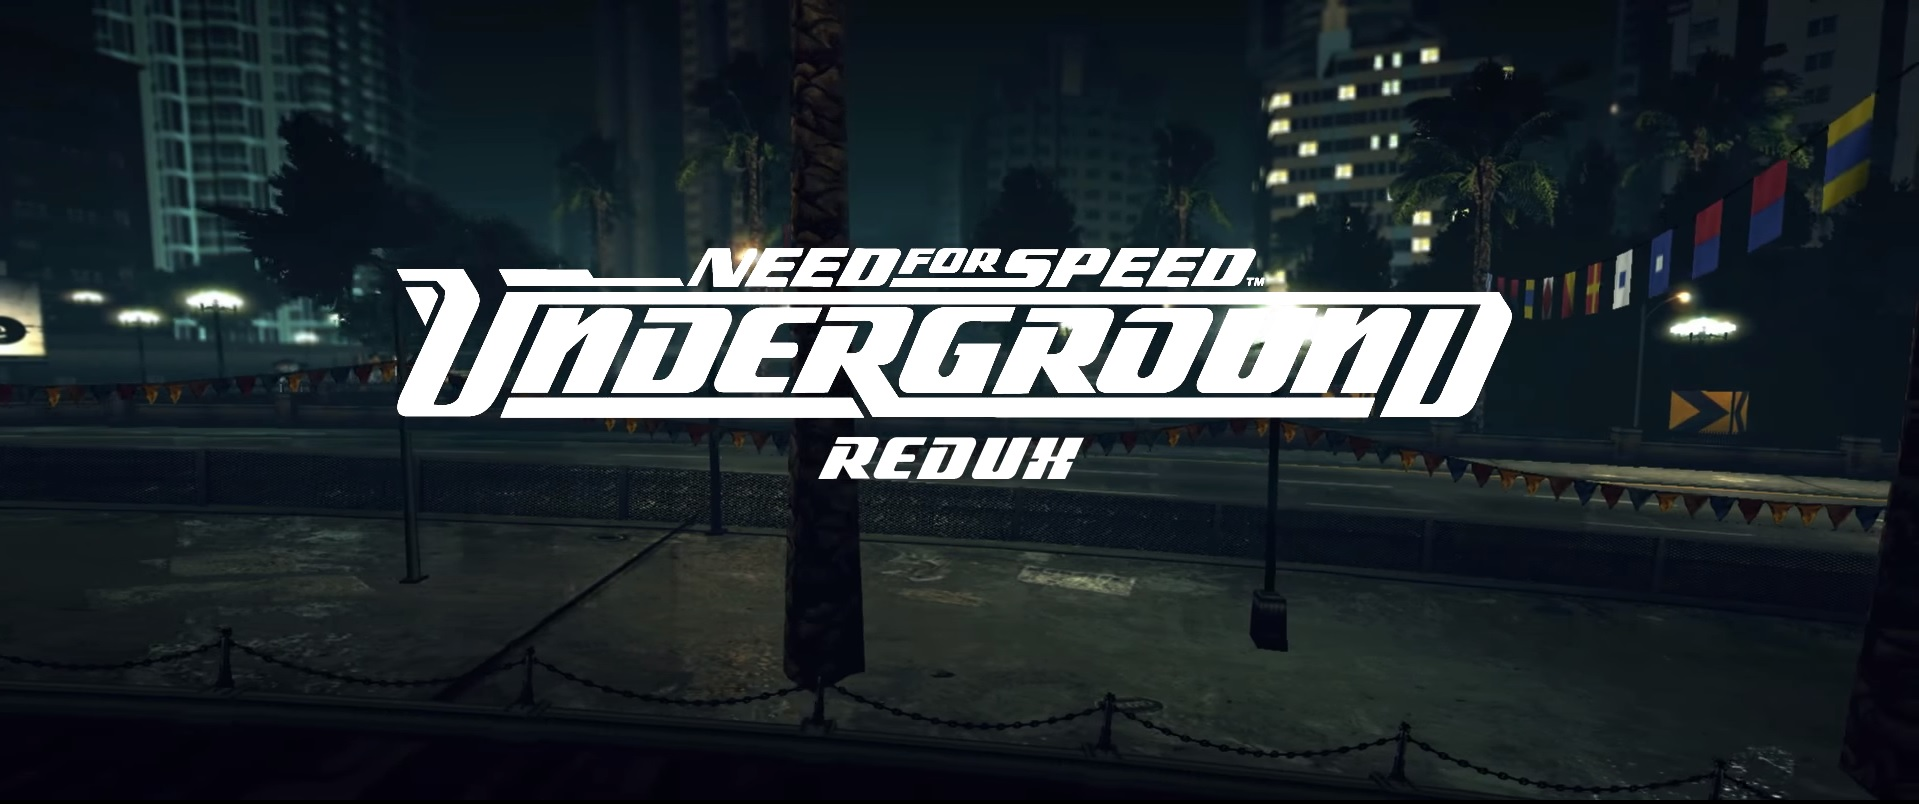 Скачать Need for speed Underground (2003) - Redux 2017 [Graphics mod v1.1.6 RUS]